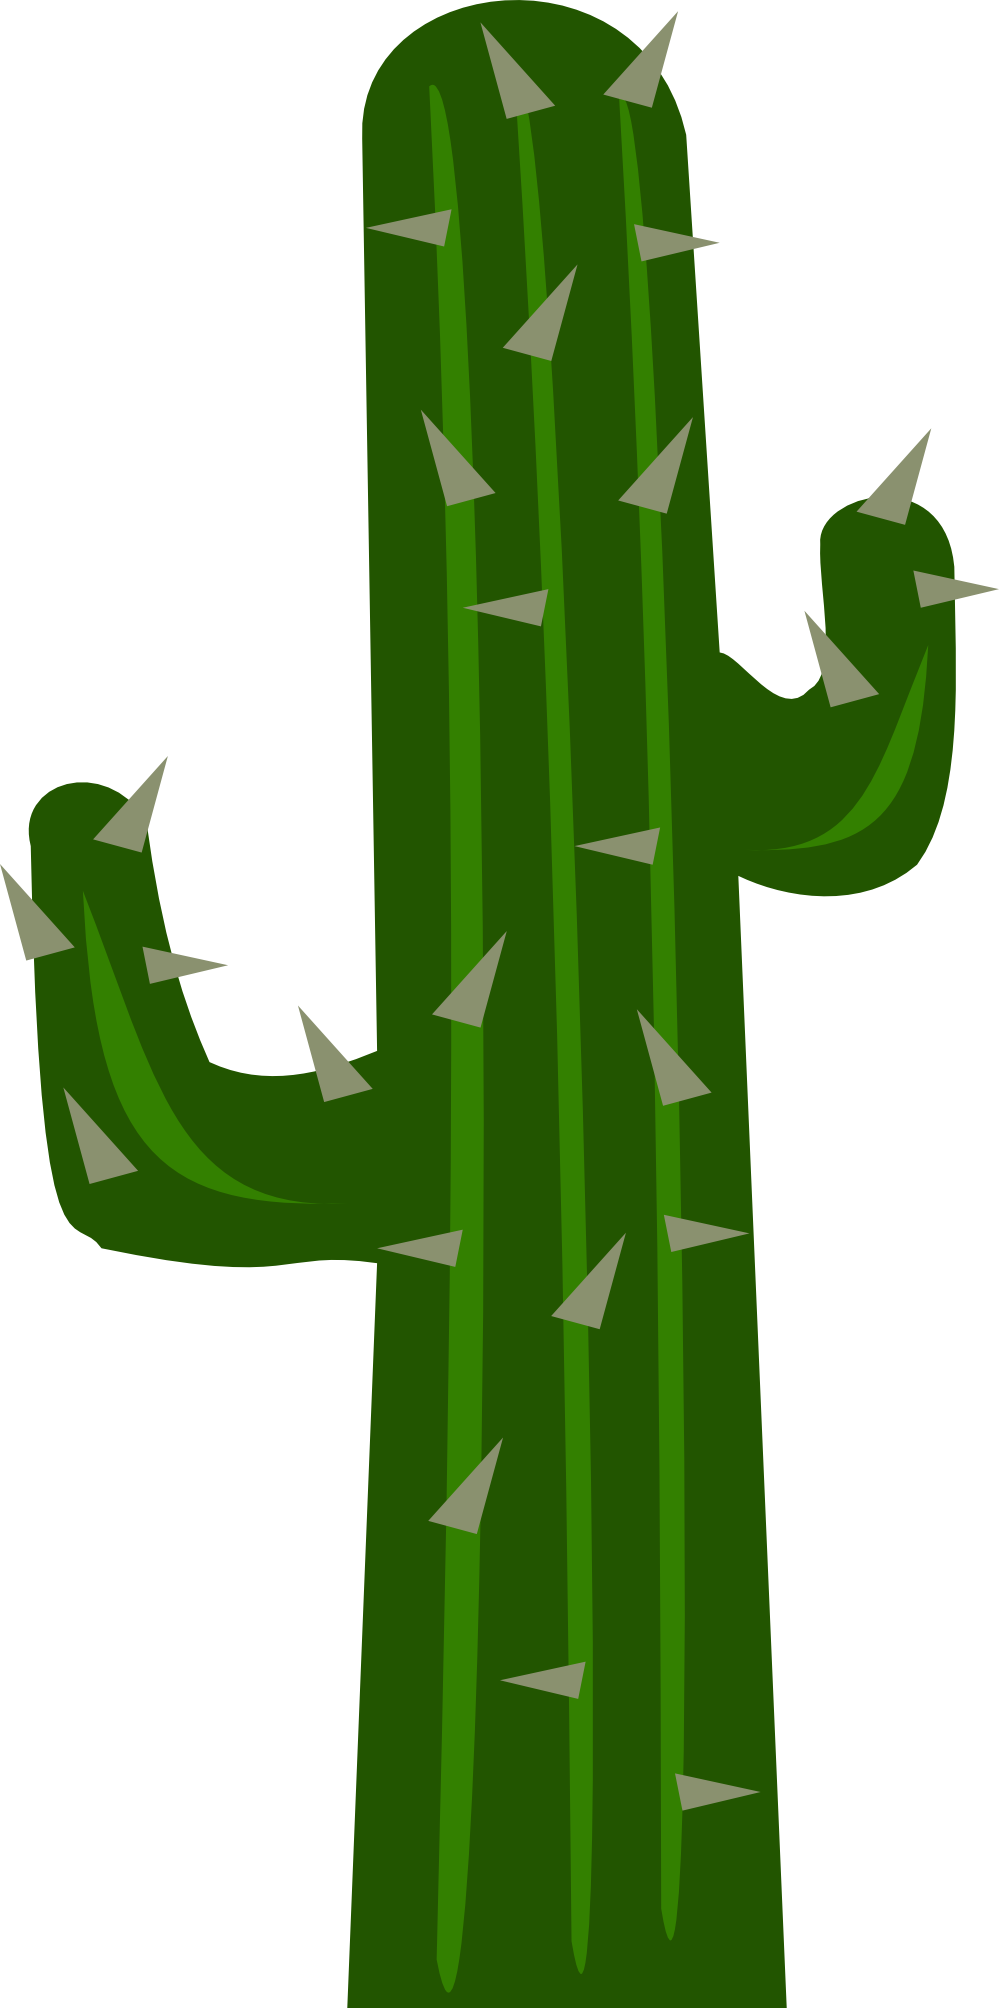 Green Cactus As A Picture For Clipart Free Image Download